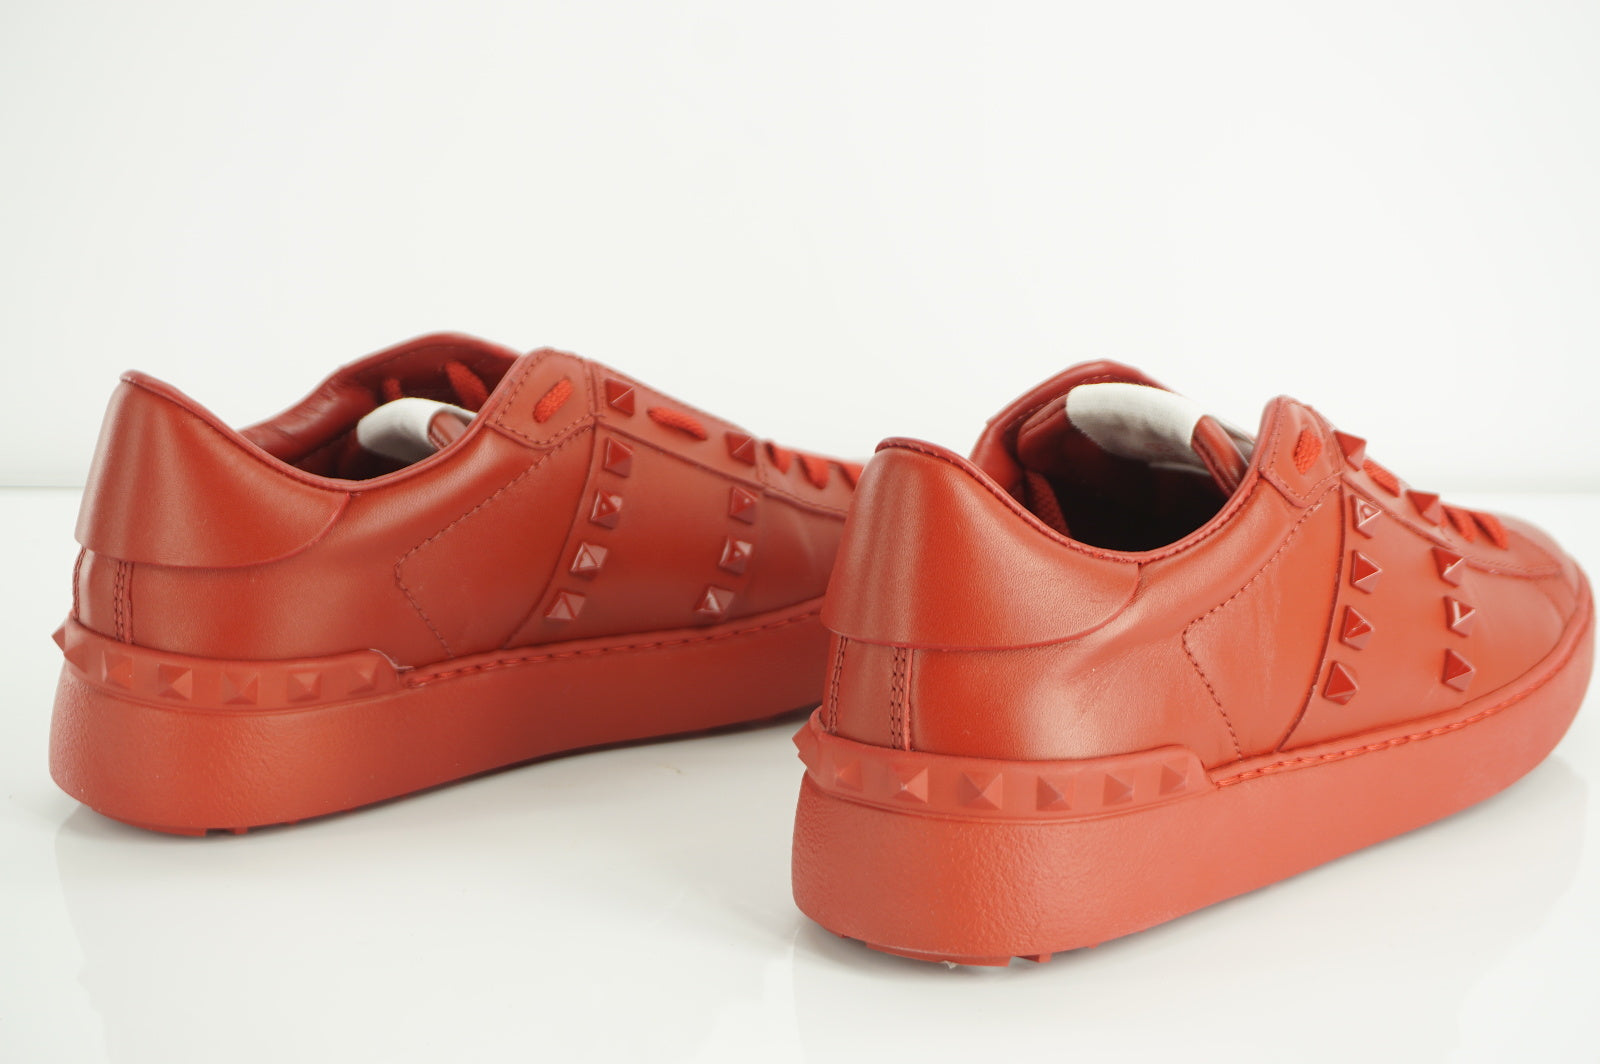 Valentino Rockstud Red Leather Sneaker Flats Size 36 low top lace up NIB $795